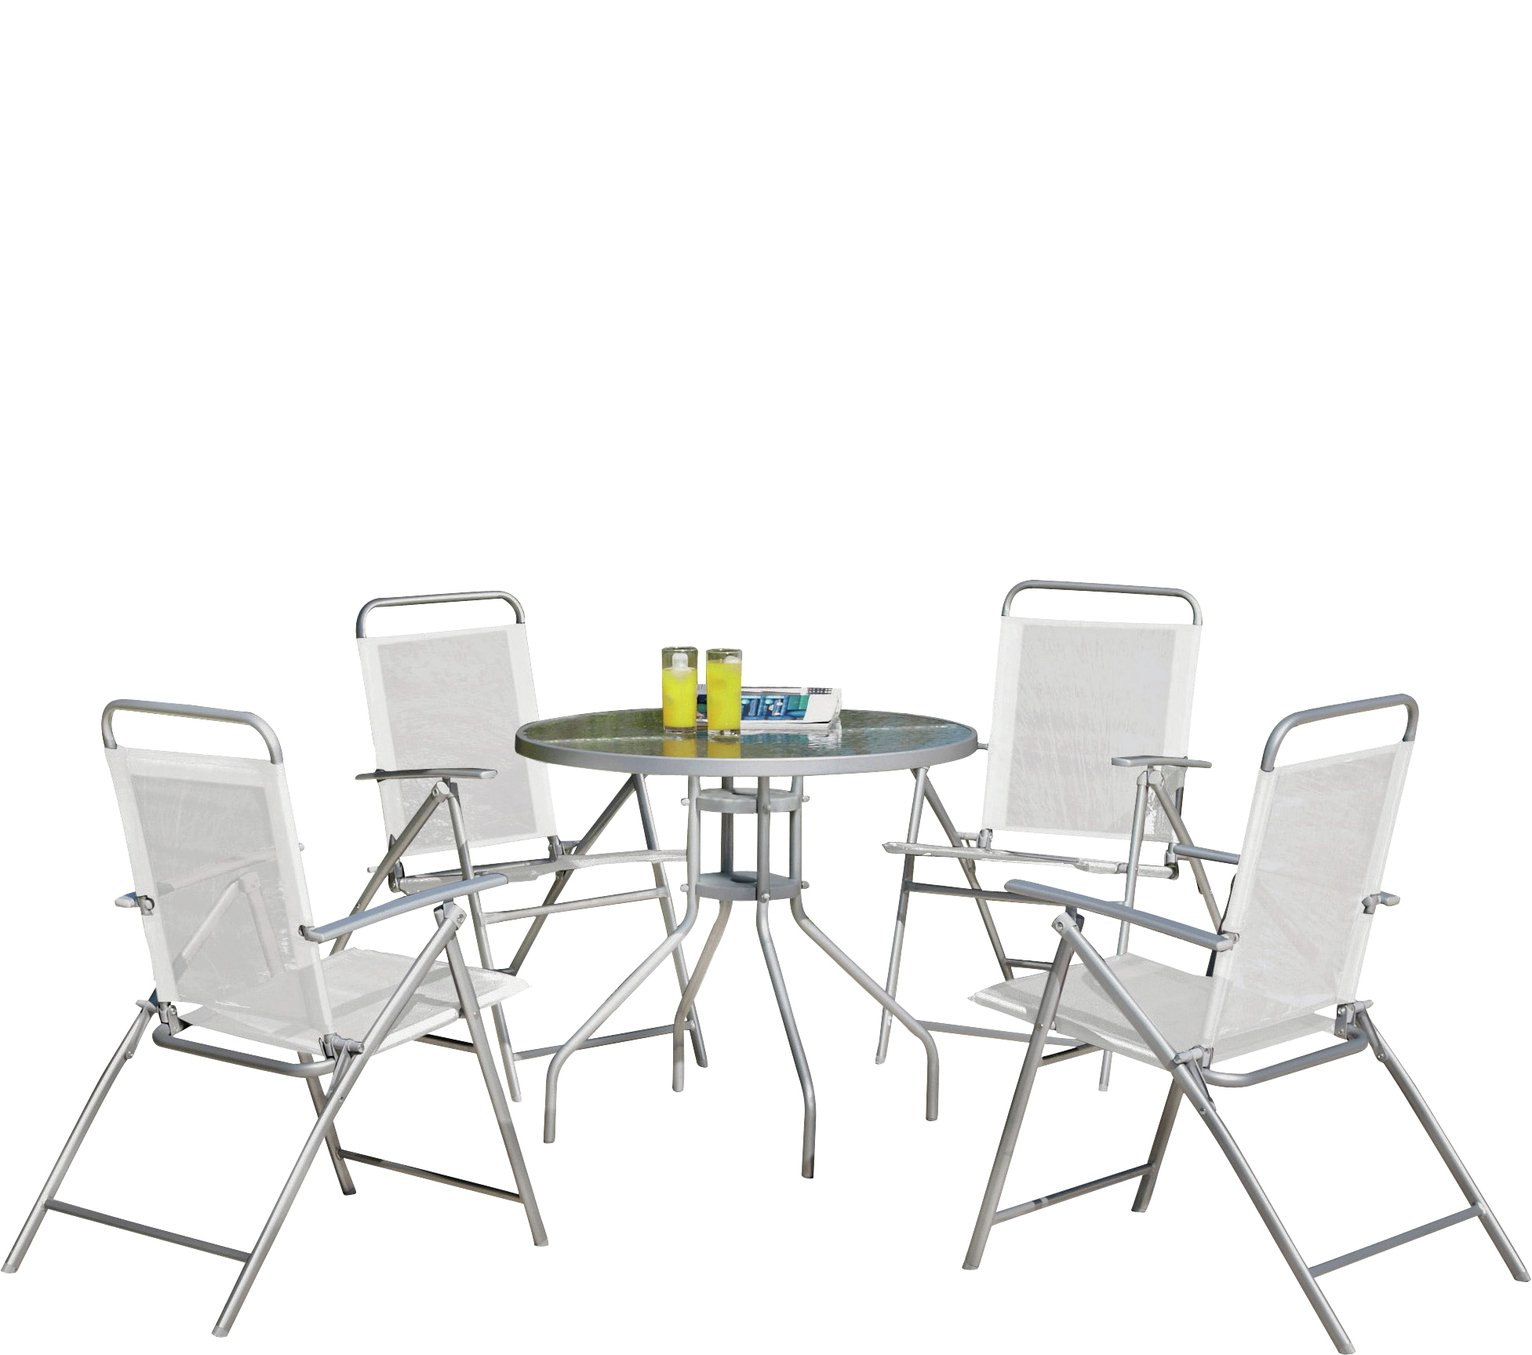 Image of Simple Value - 4 Seater Patio Furniture Set